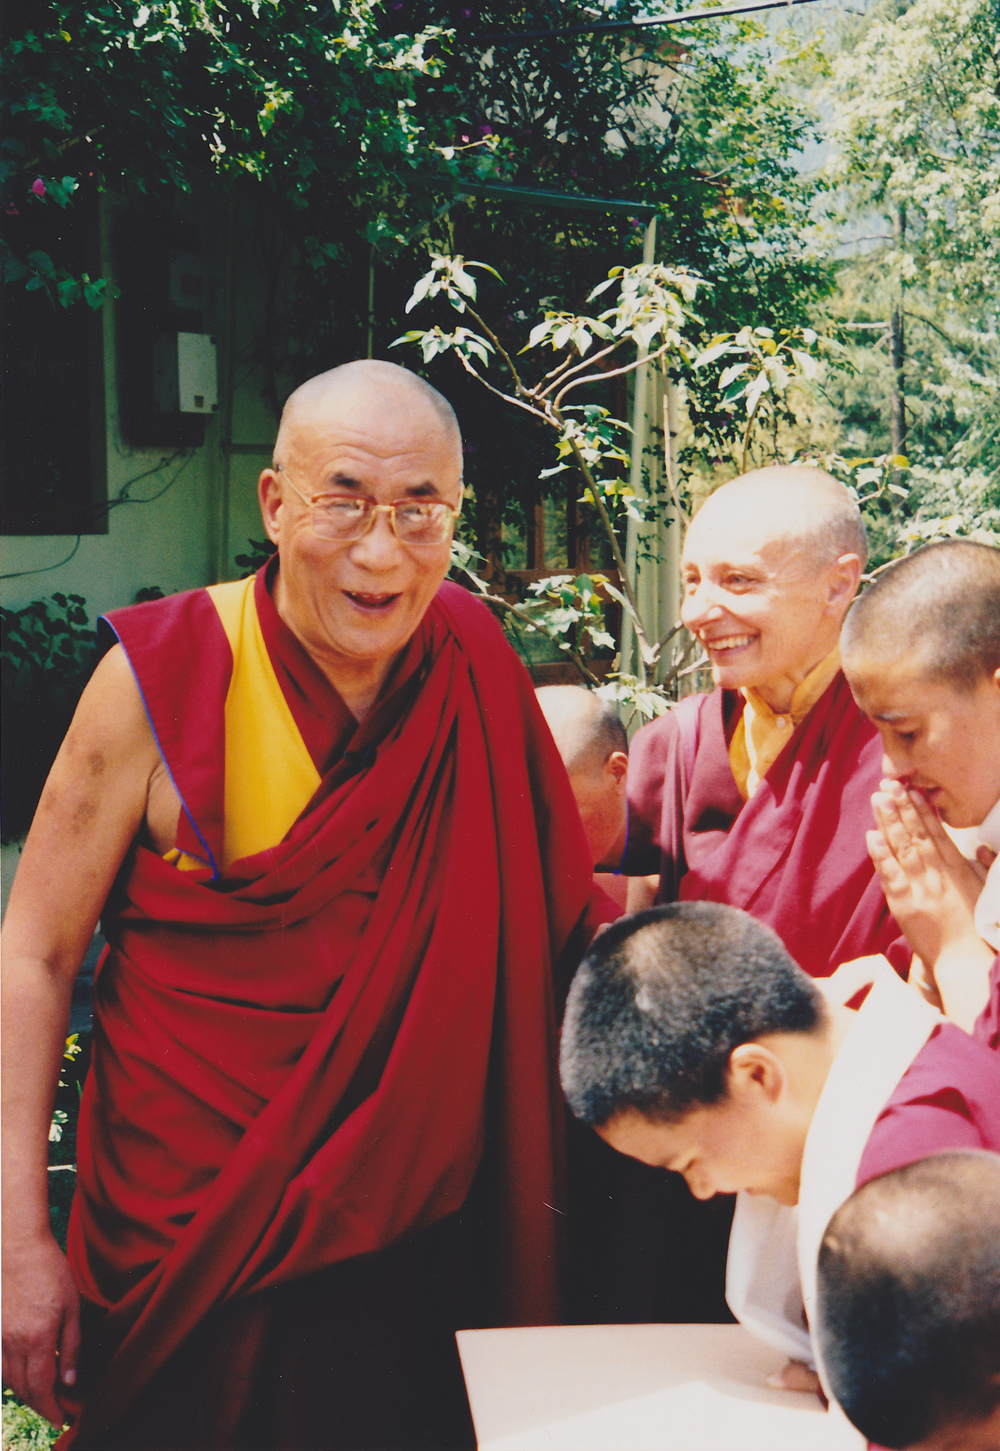 His Holiness the Dalai Lama with Jetsunma and her nuns